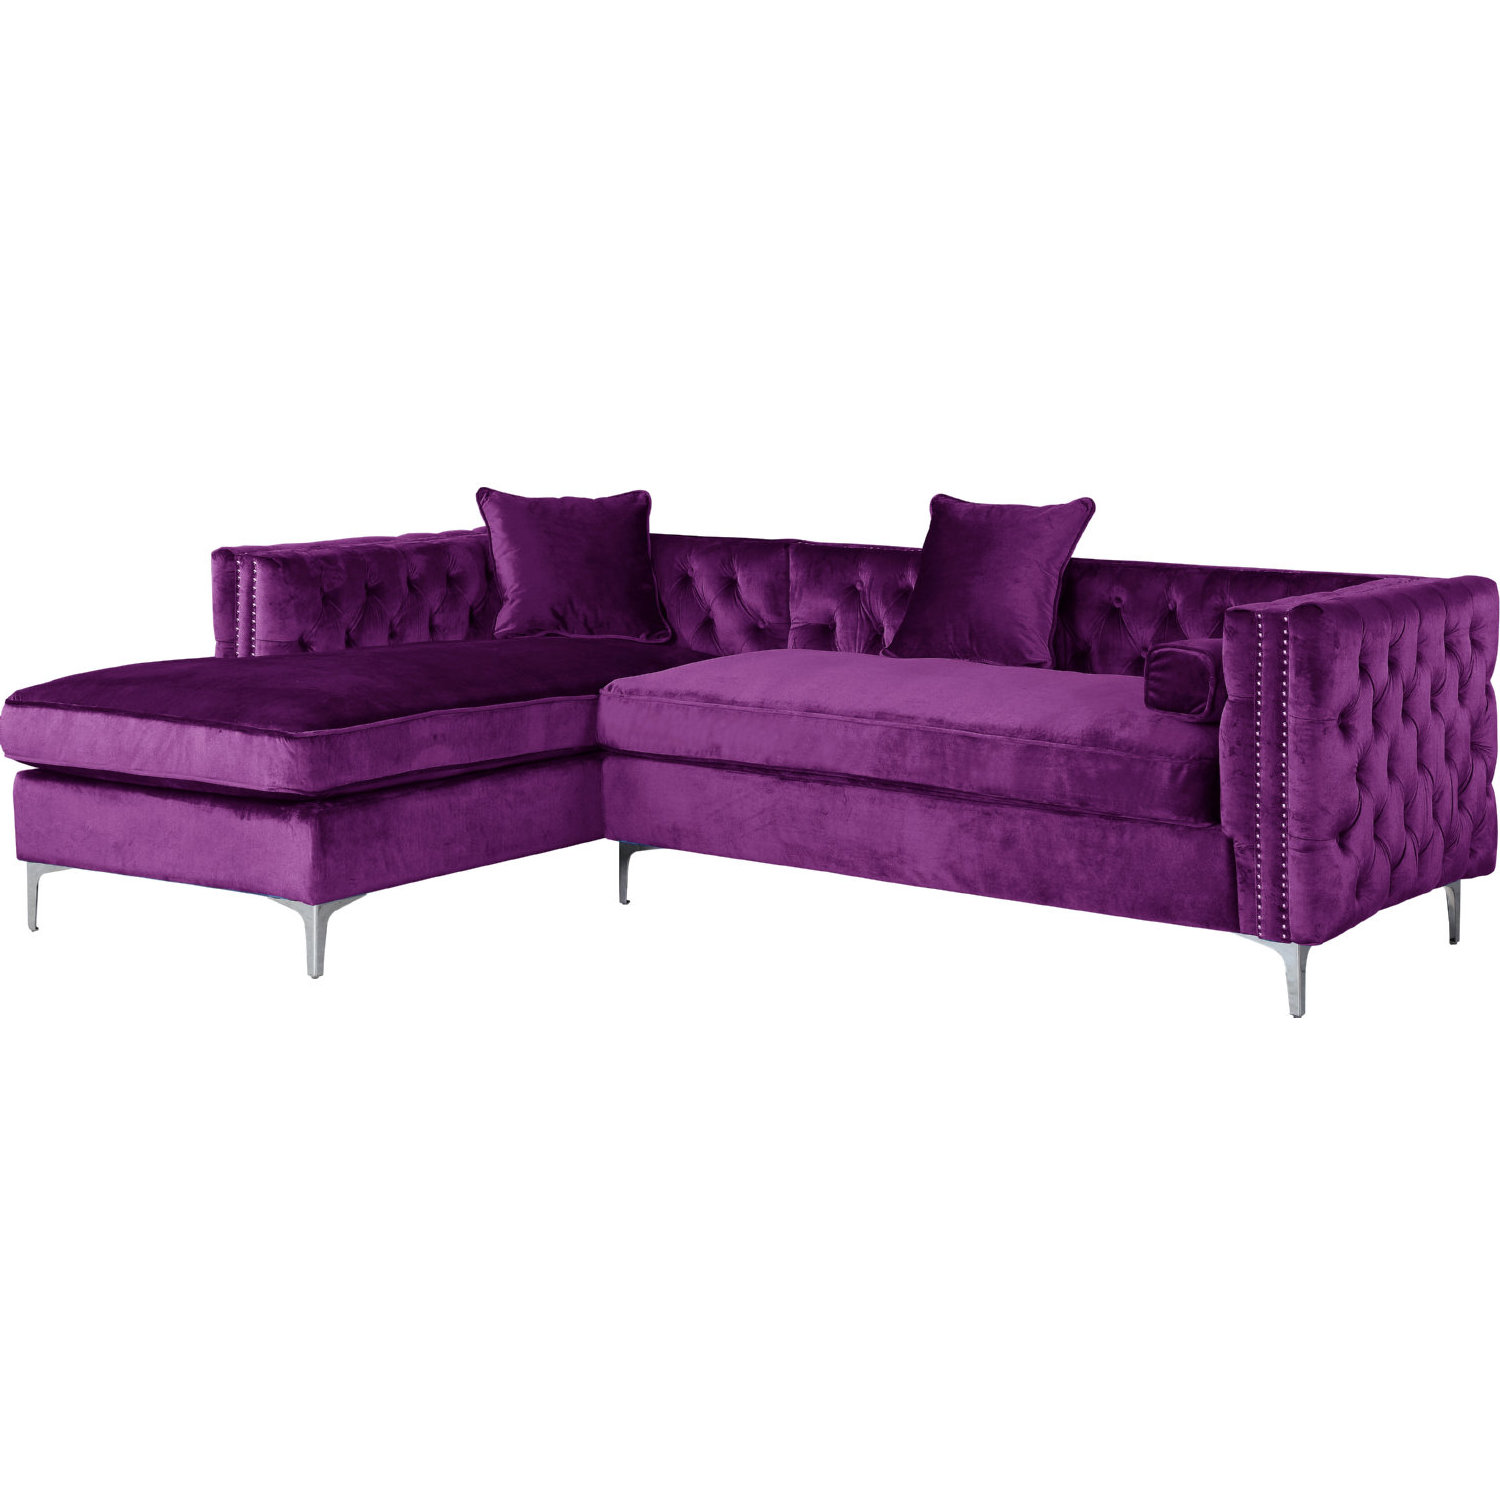 Wondrous Da Vinci Sectional Sofa W Left Chaise In Tufted Purple Velvet W Nailhead By Chic Home Cjindustries Chair Design For Home Cjindustriesco